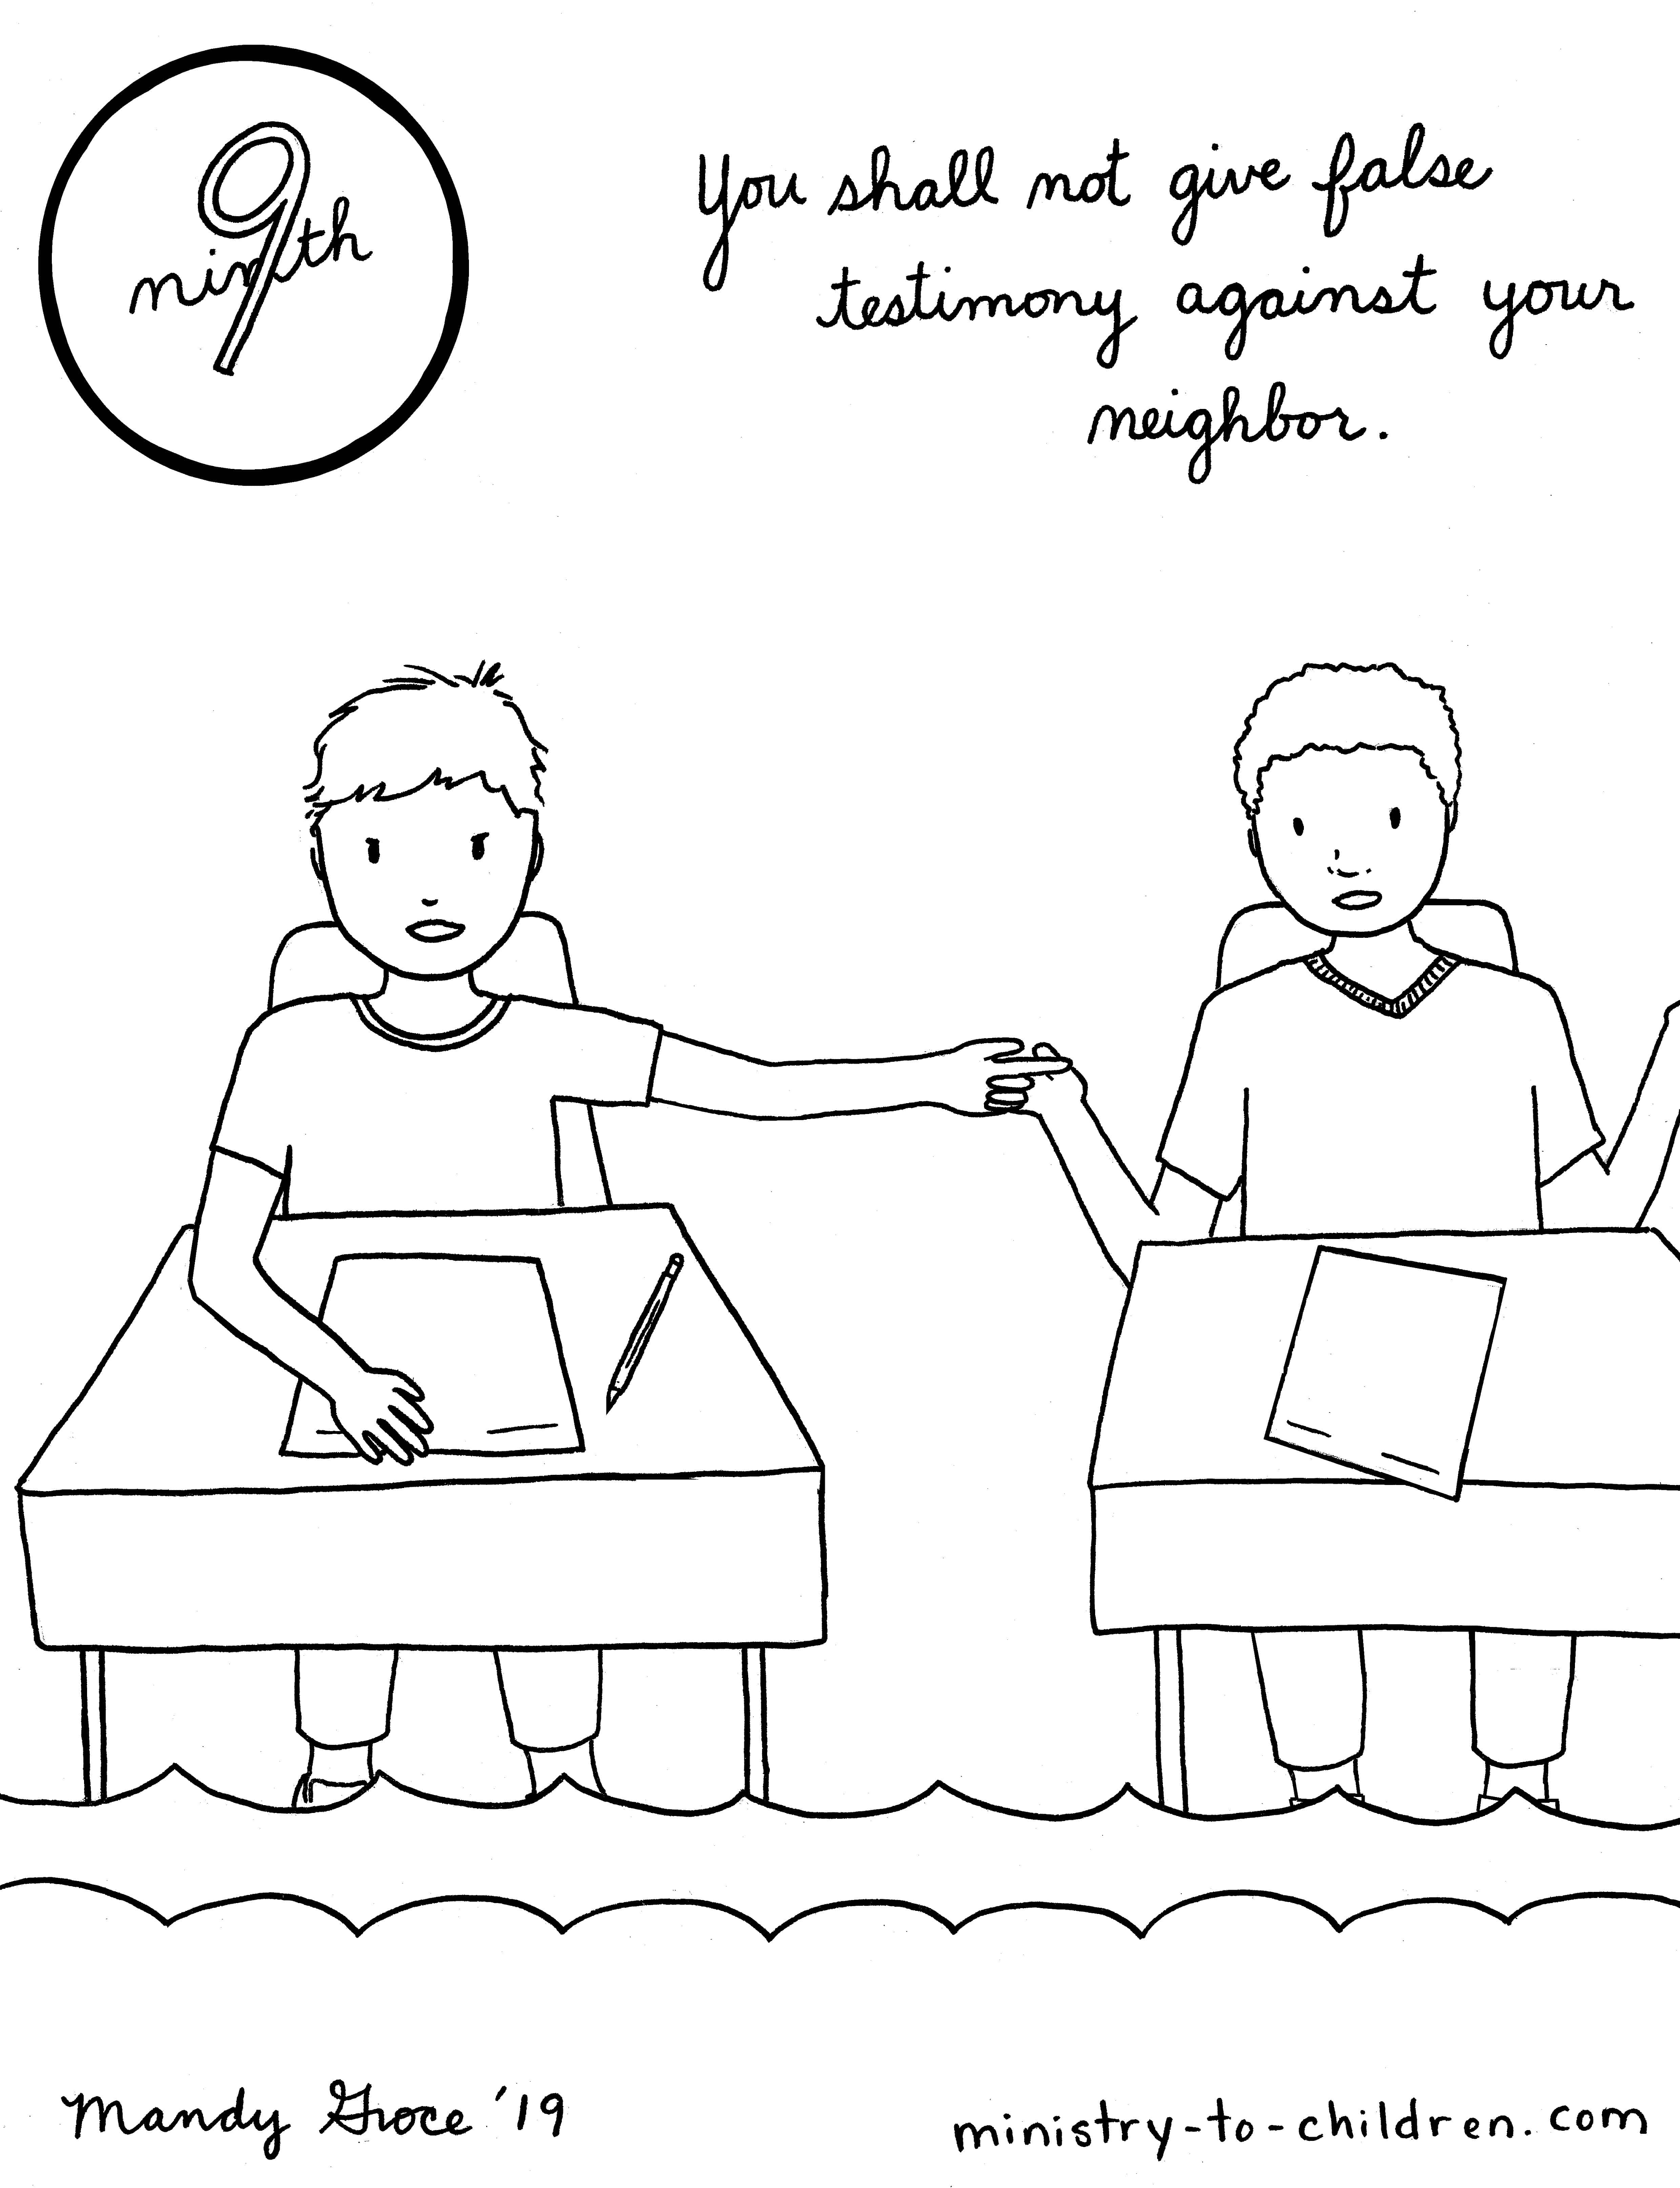 9th Commandment Coloring Page: You Shall Not Lie